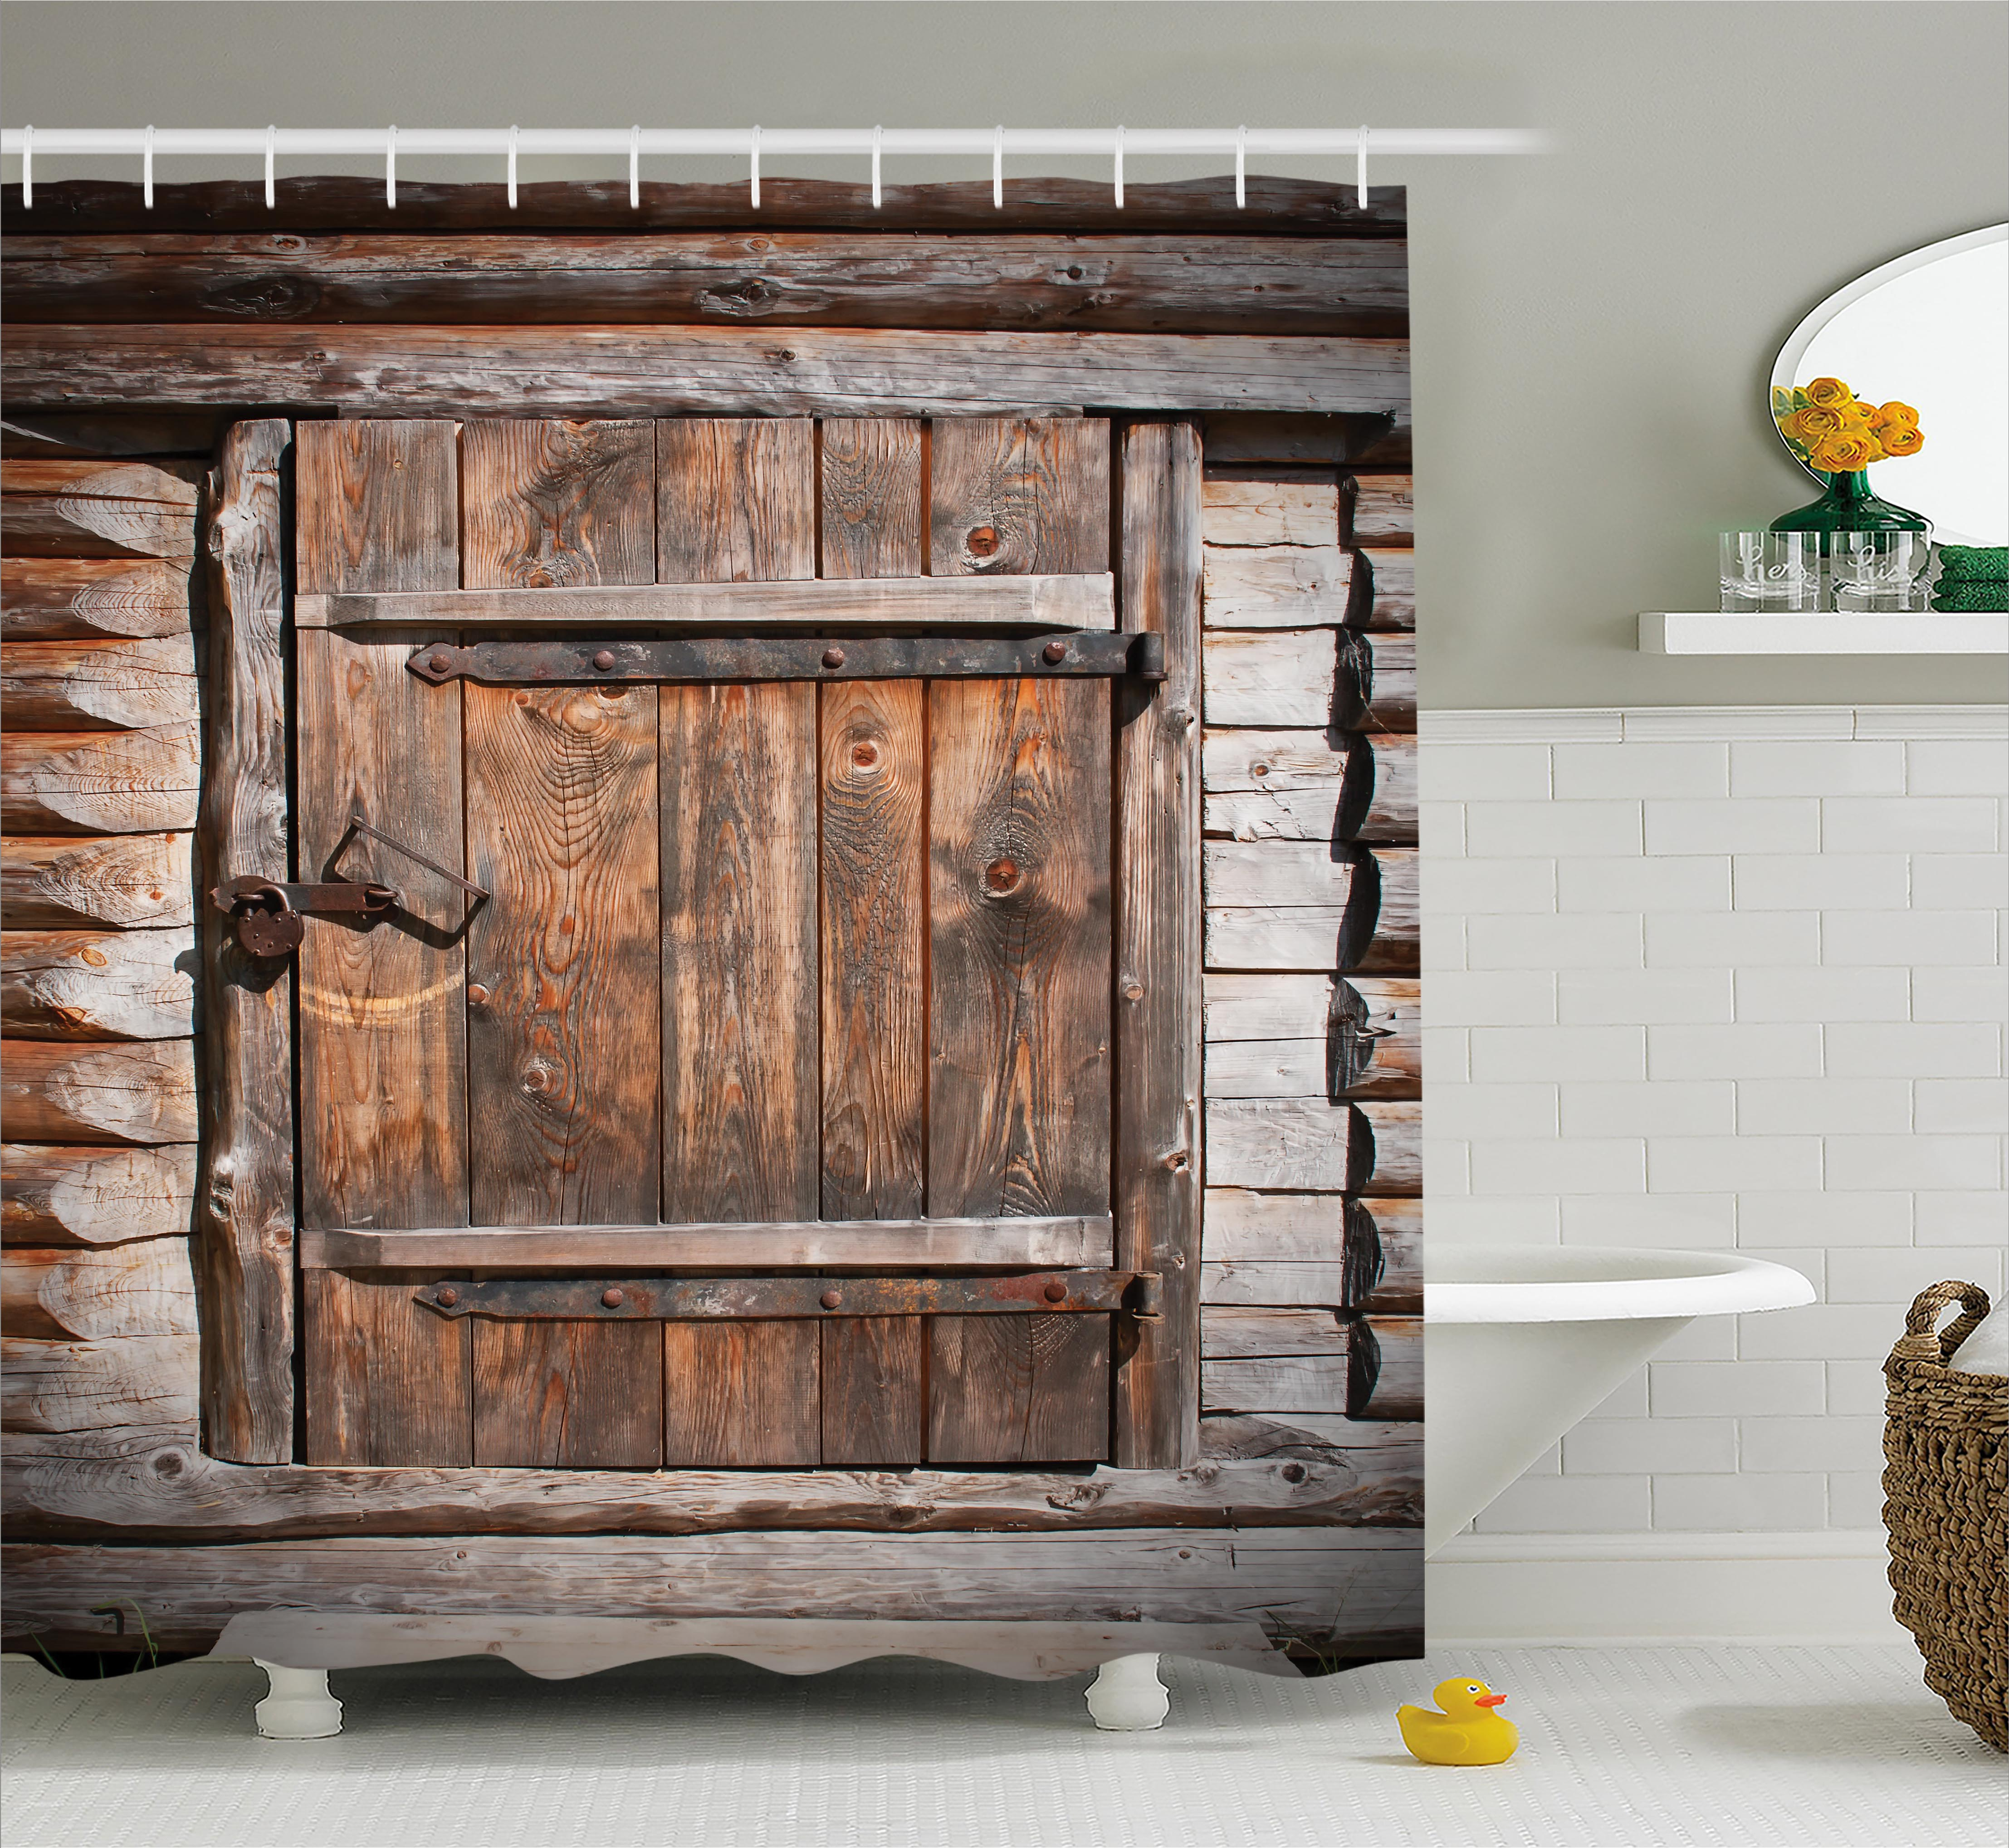 Vintage Shower Curtain, Rustic Wooden Door of Old Barn in Farmhouse Countryside Village Aged Rural Life Image, Fabric Bathroom Set with Hooks, 69W X 75L Inches Long, Brown, by Ambesonne